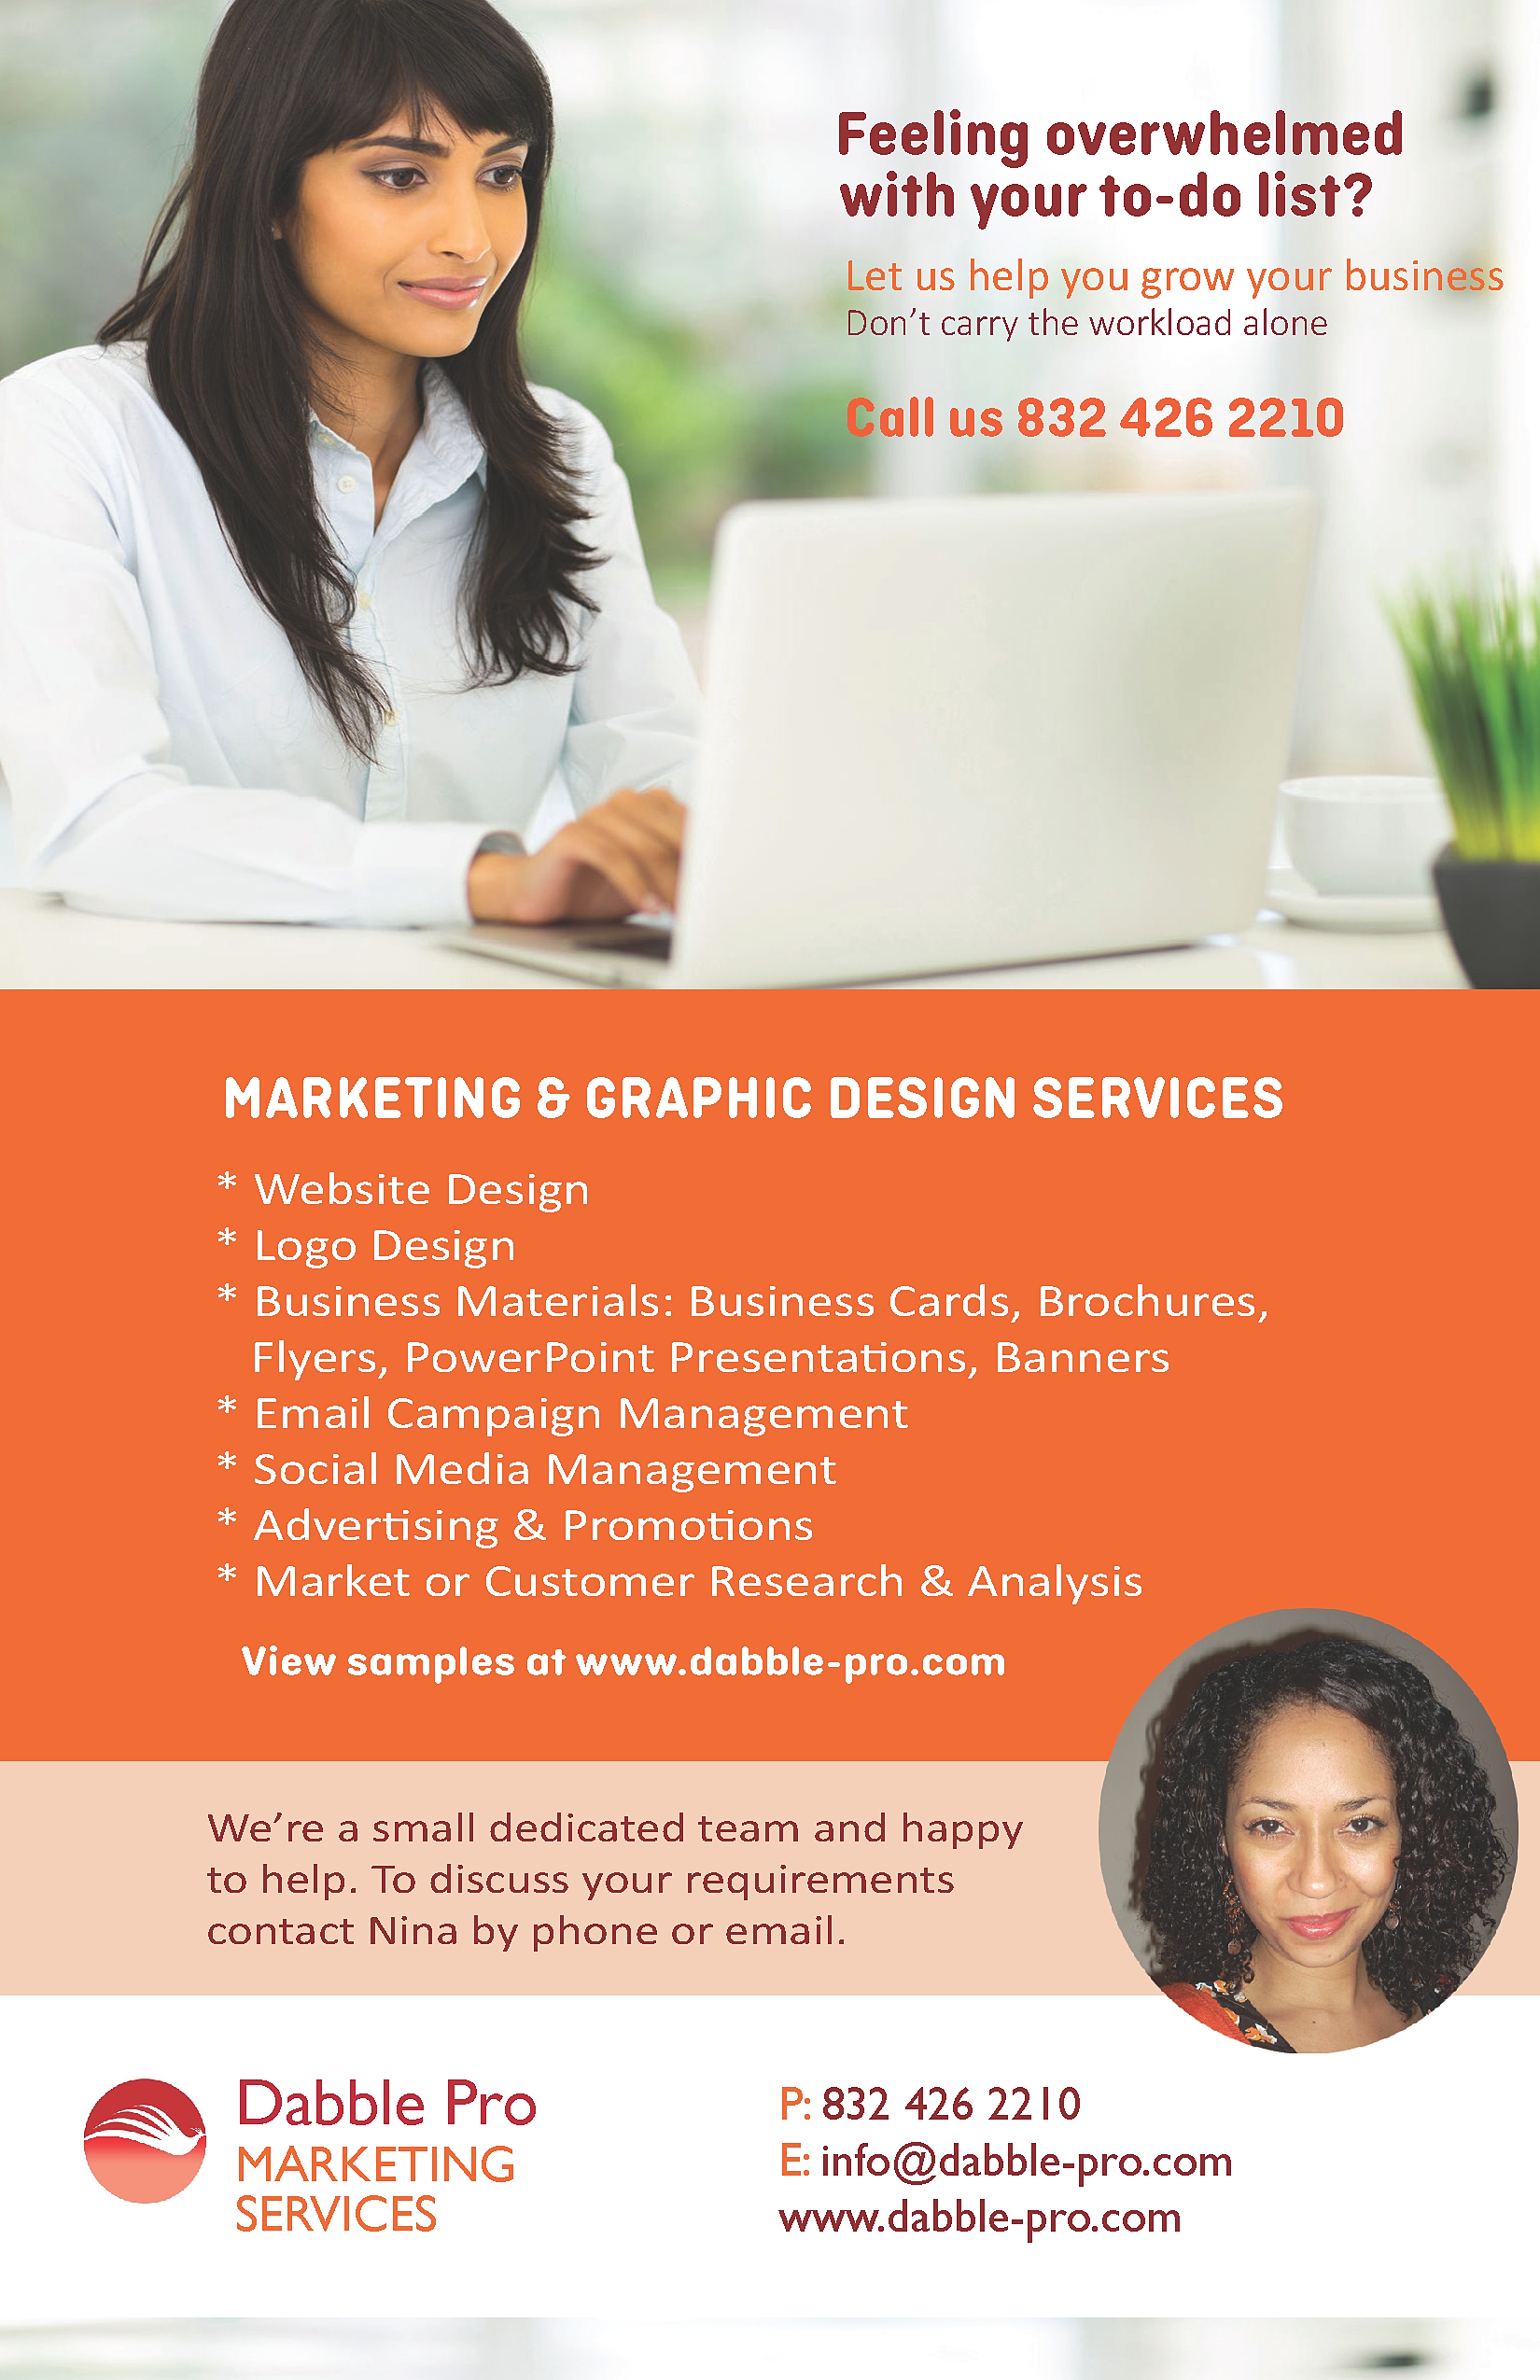 dabble pro marketing services virtual marketing assistant flyer dabble pro marketing services virtual marketing assistant flyer